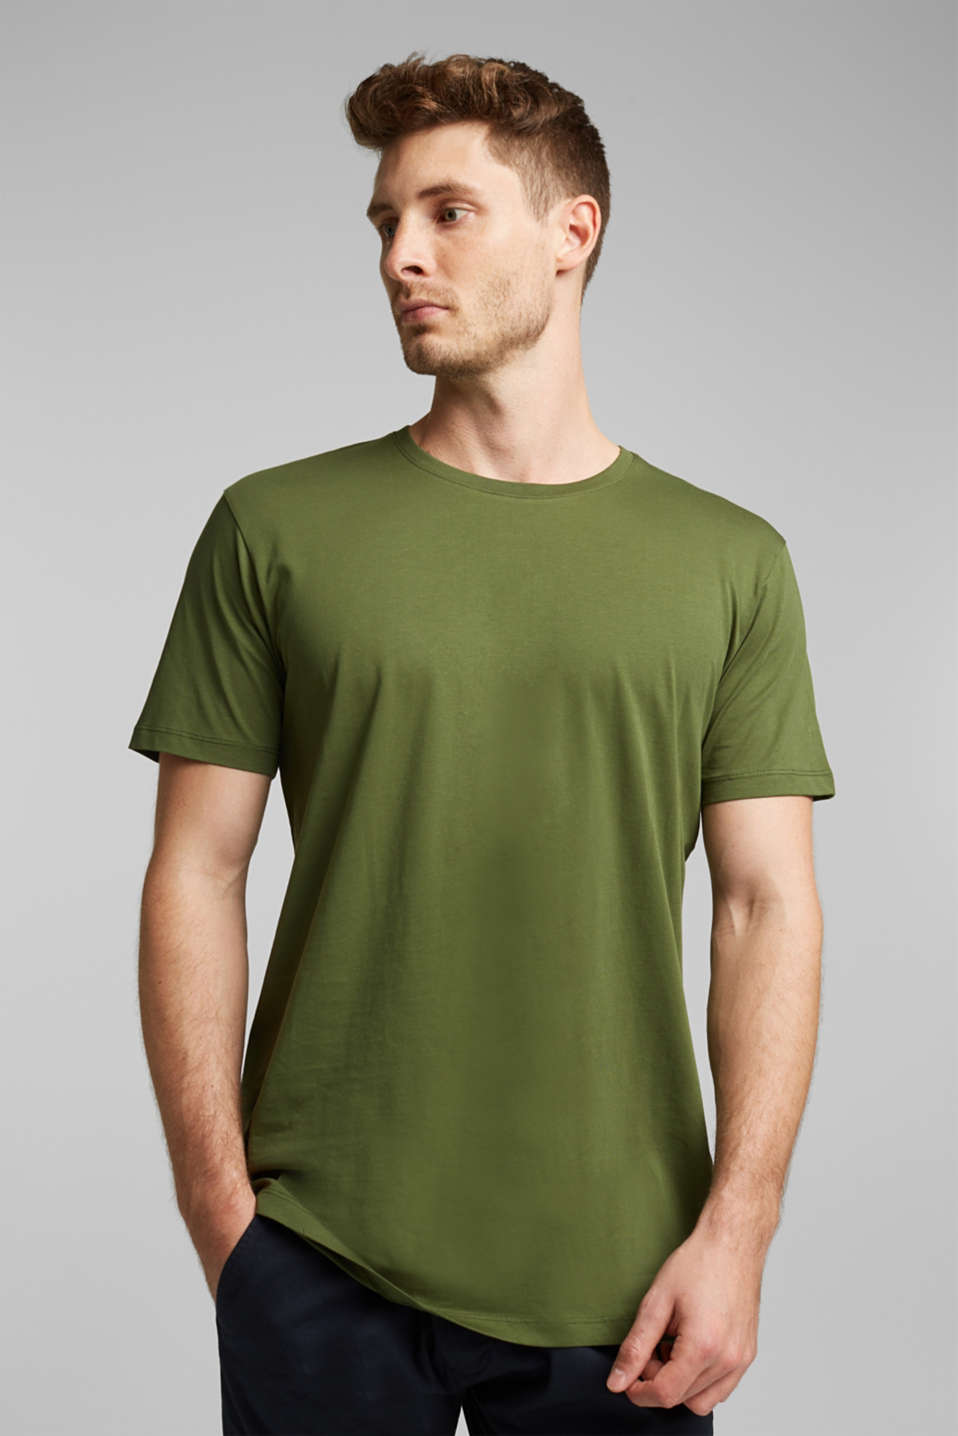 Jersey T-shirt in 100% cotton, KHAKI GREEN, detail image number 0